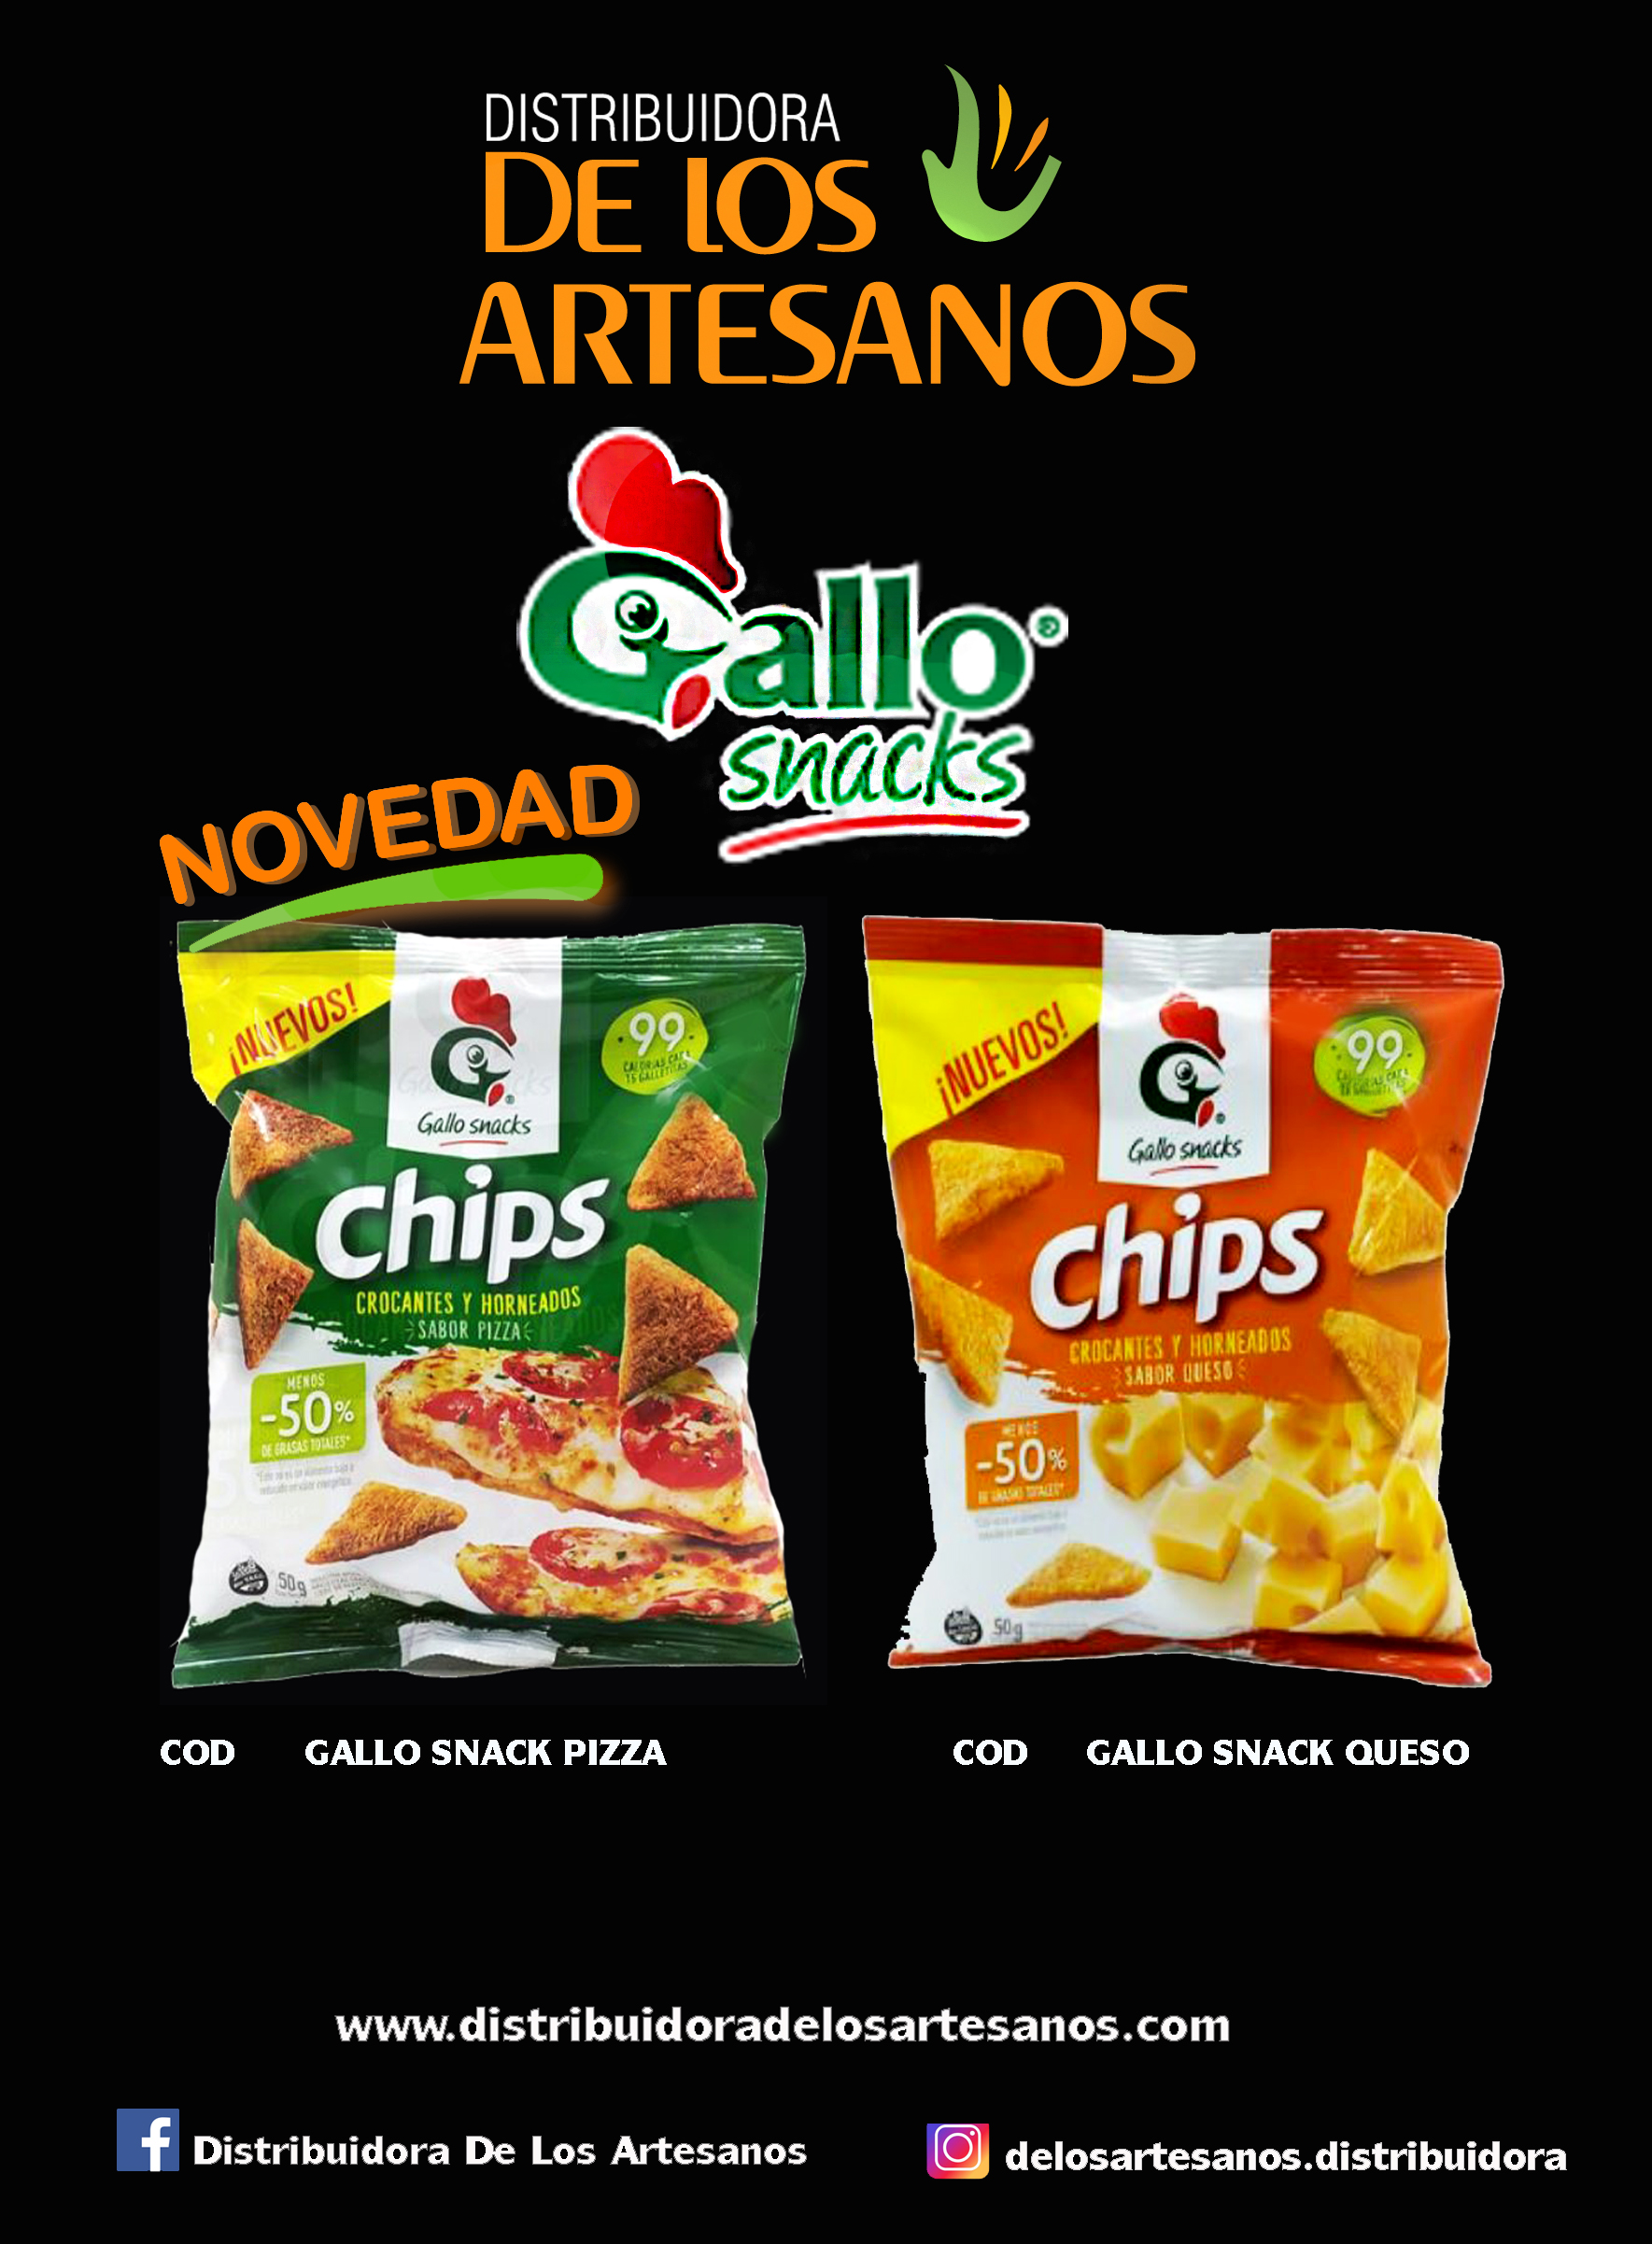 GALLO SNACK QUESO / PIZZA LIBRES DE GLUTEN SIN TACC